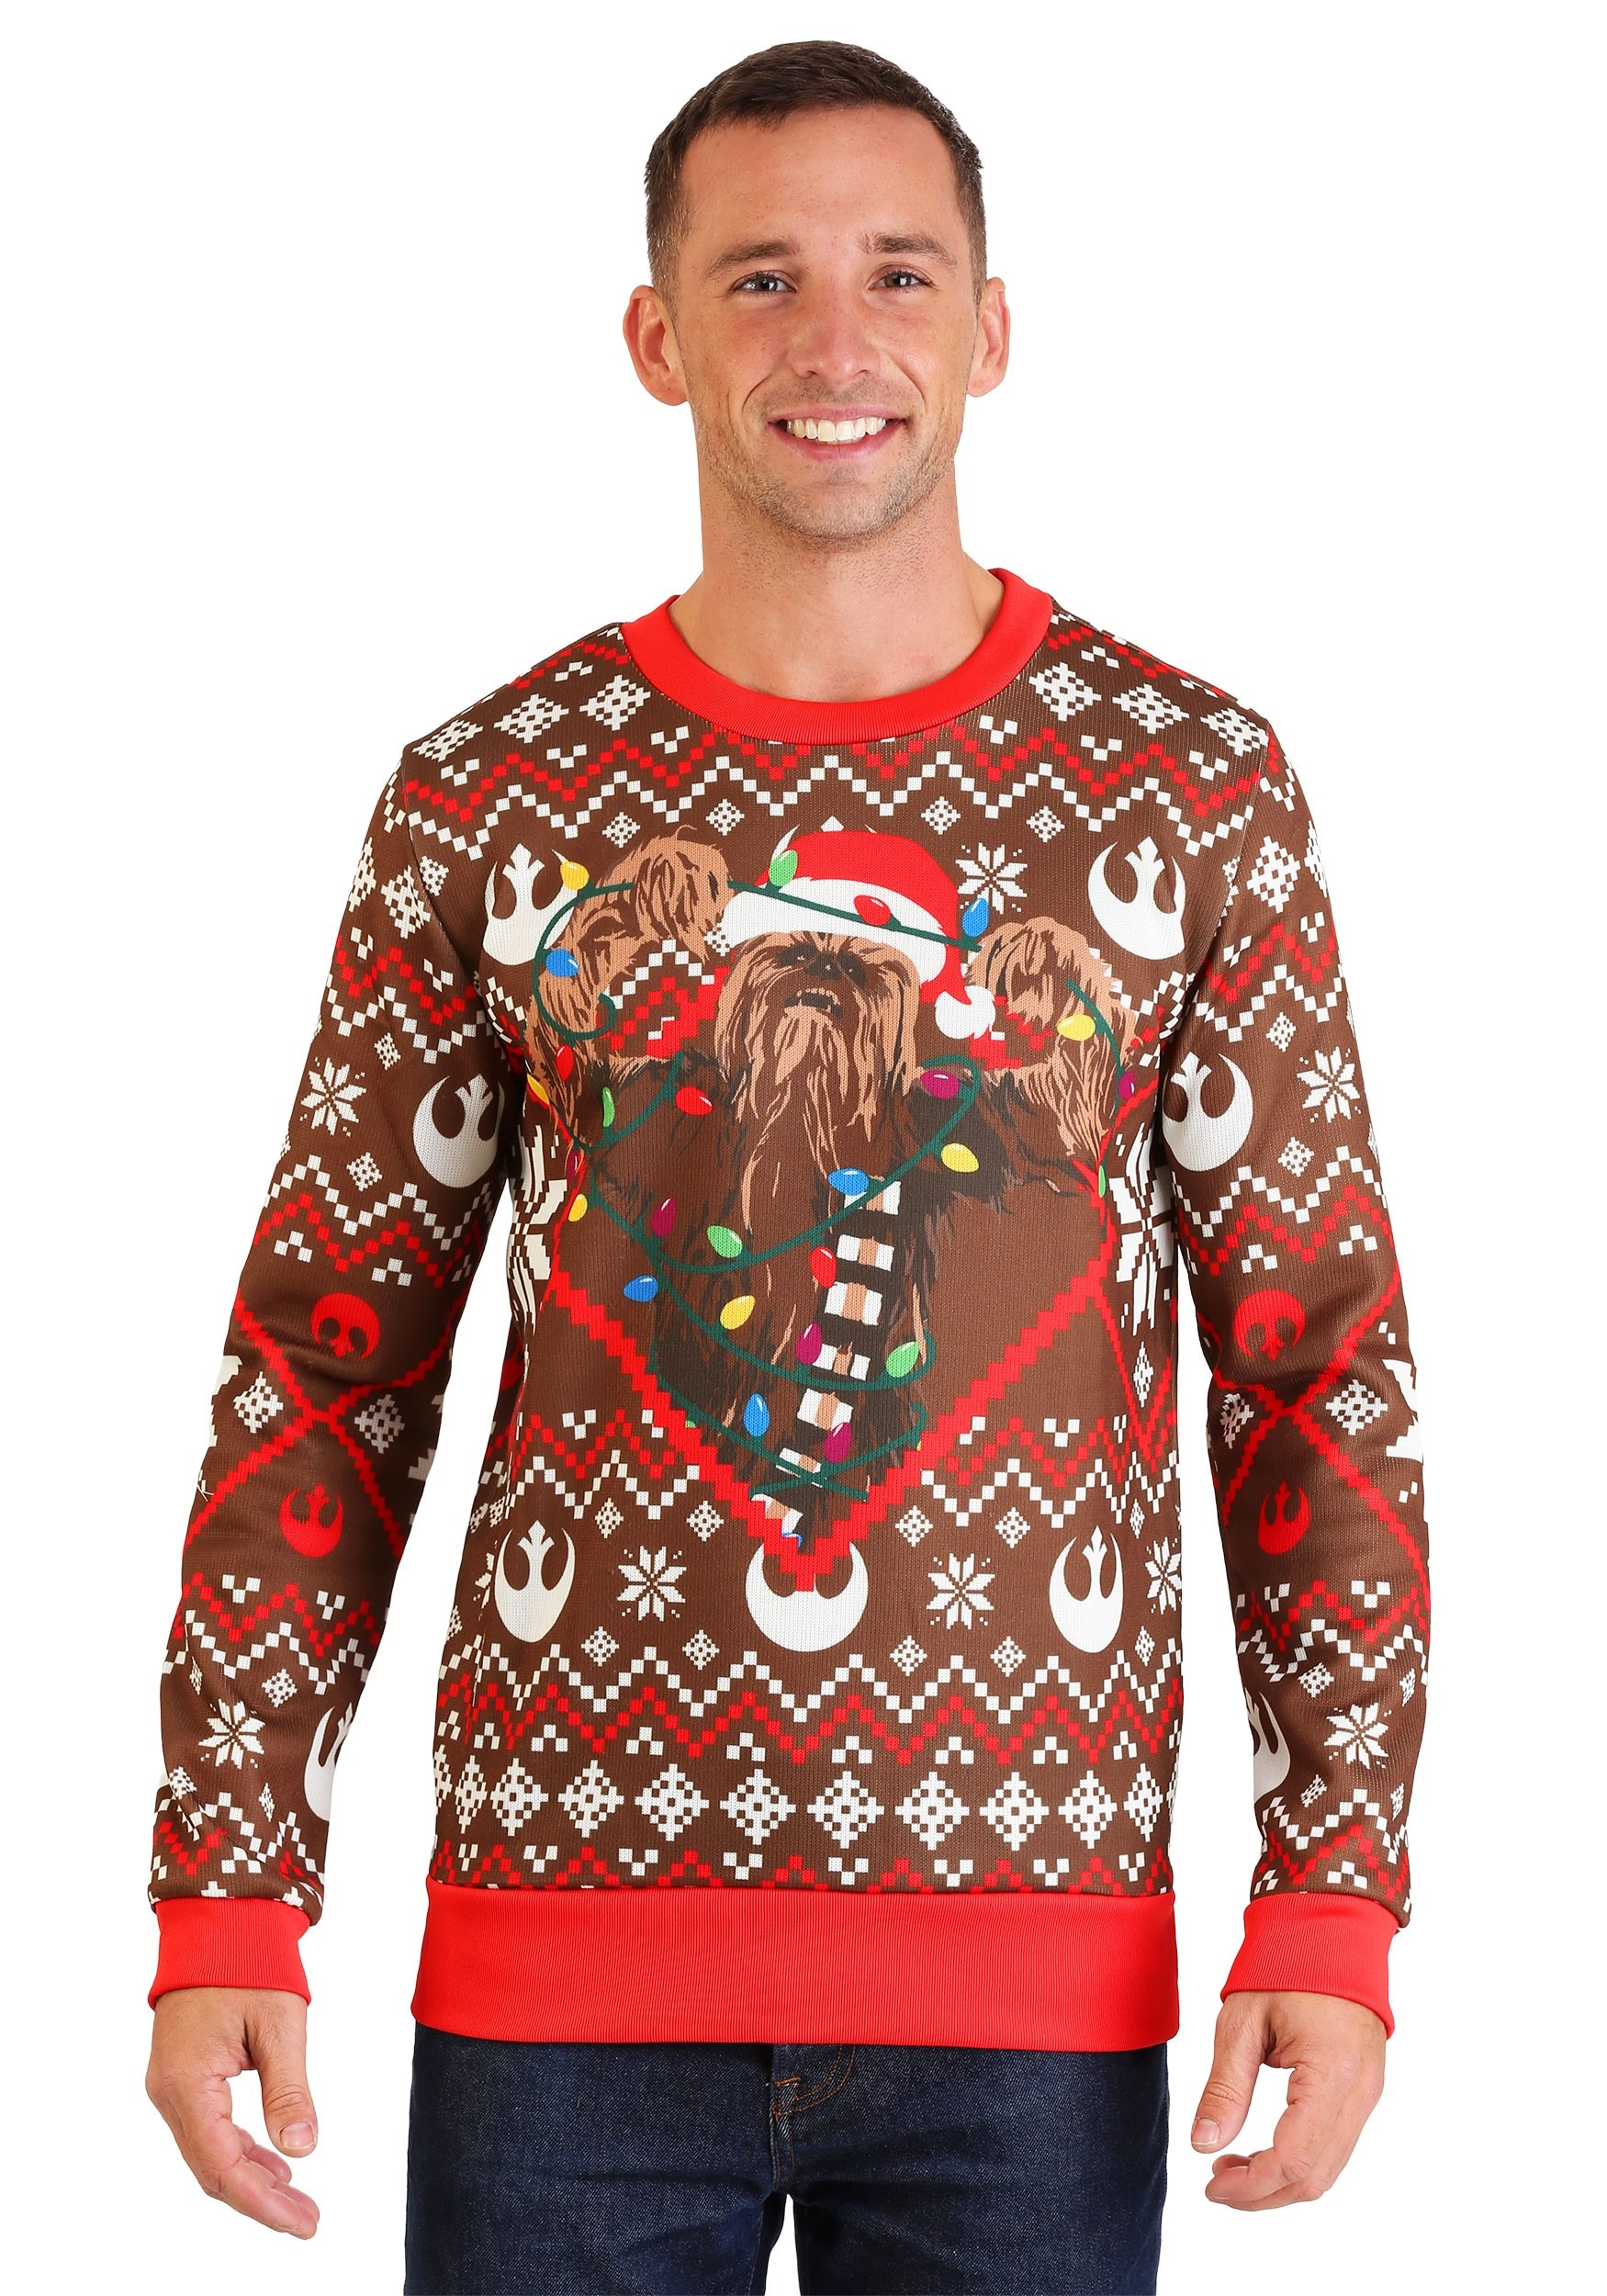 Star Wars Chewbacca Ugly Christmas Sweater for Adults